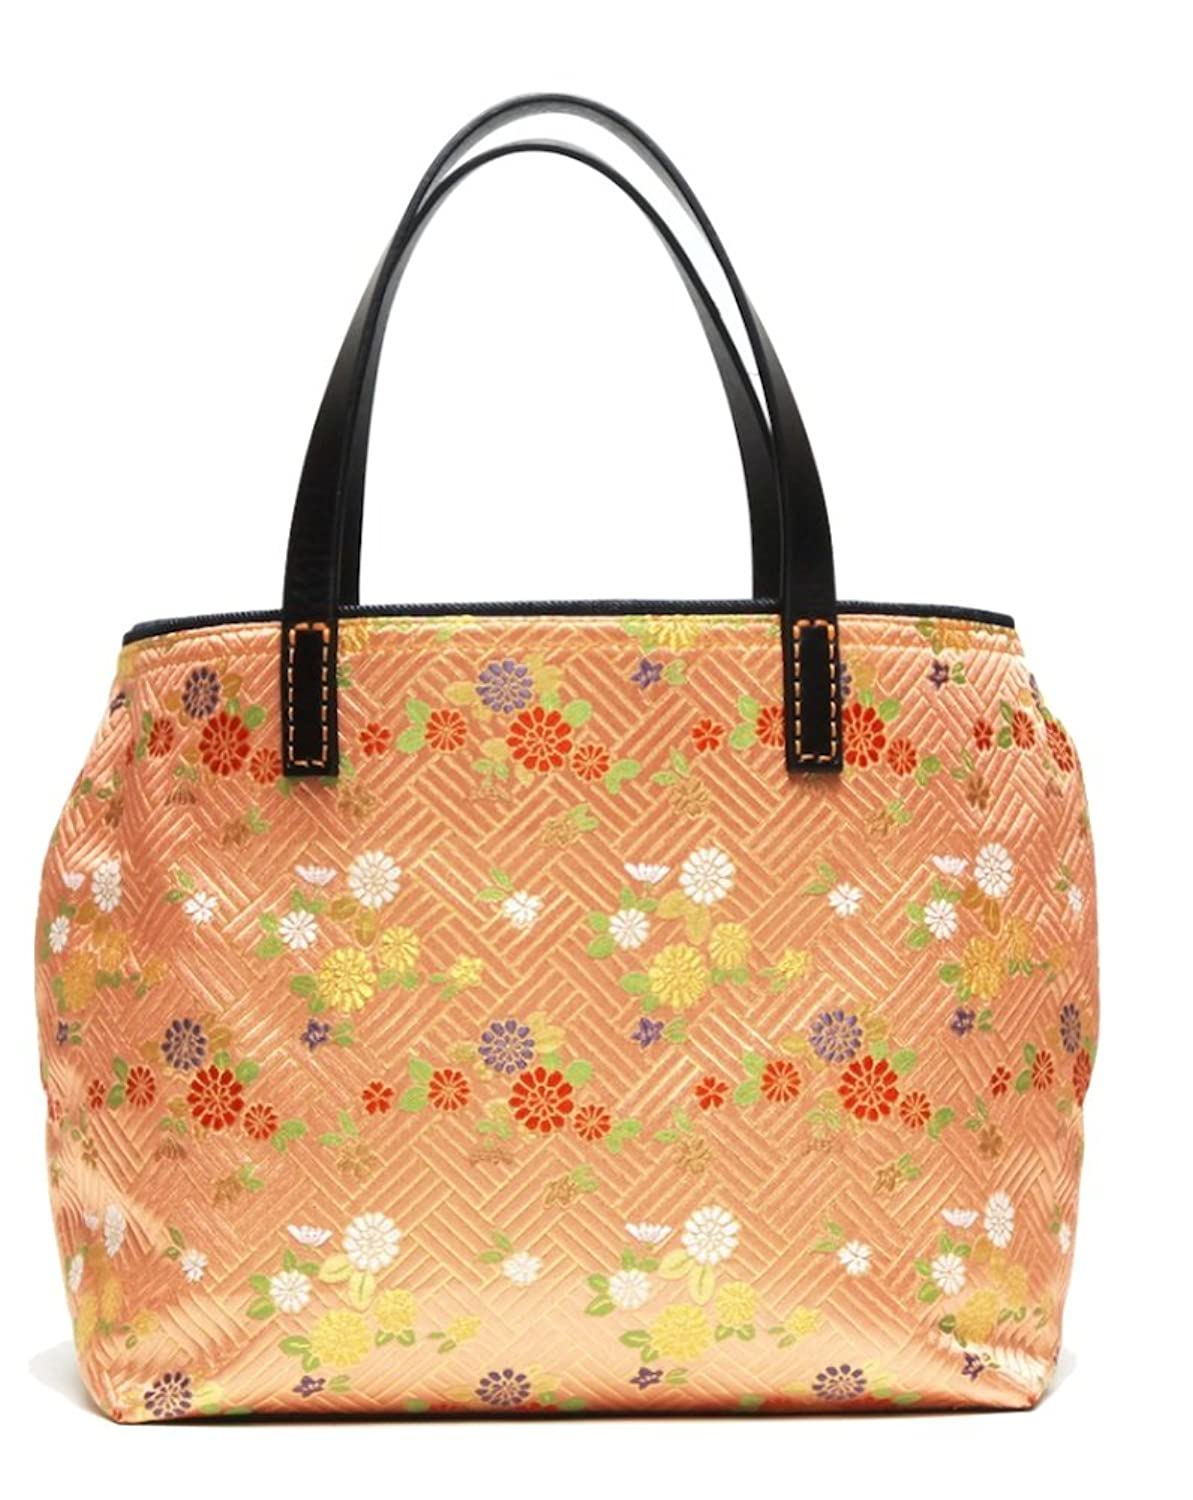 Kinran Medium Tote BAG / Salmon Pink 1379 [ Japan Import ]